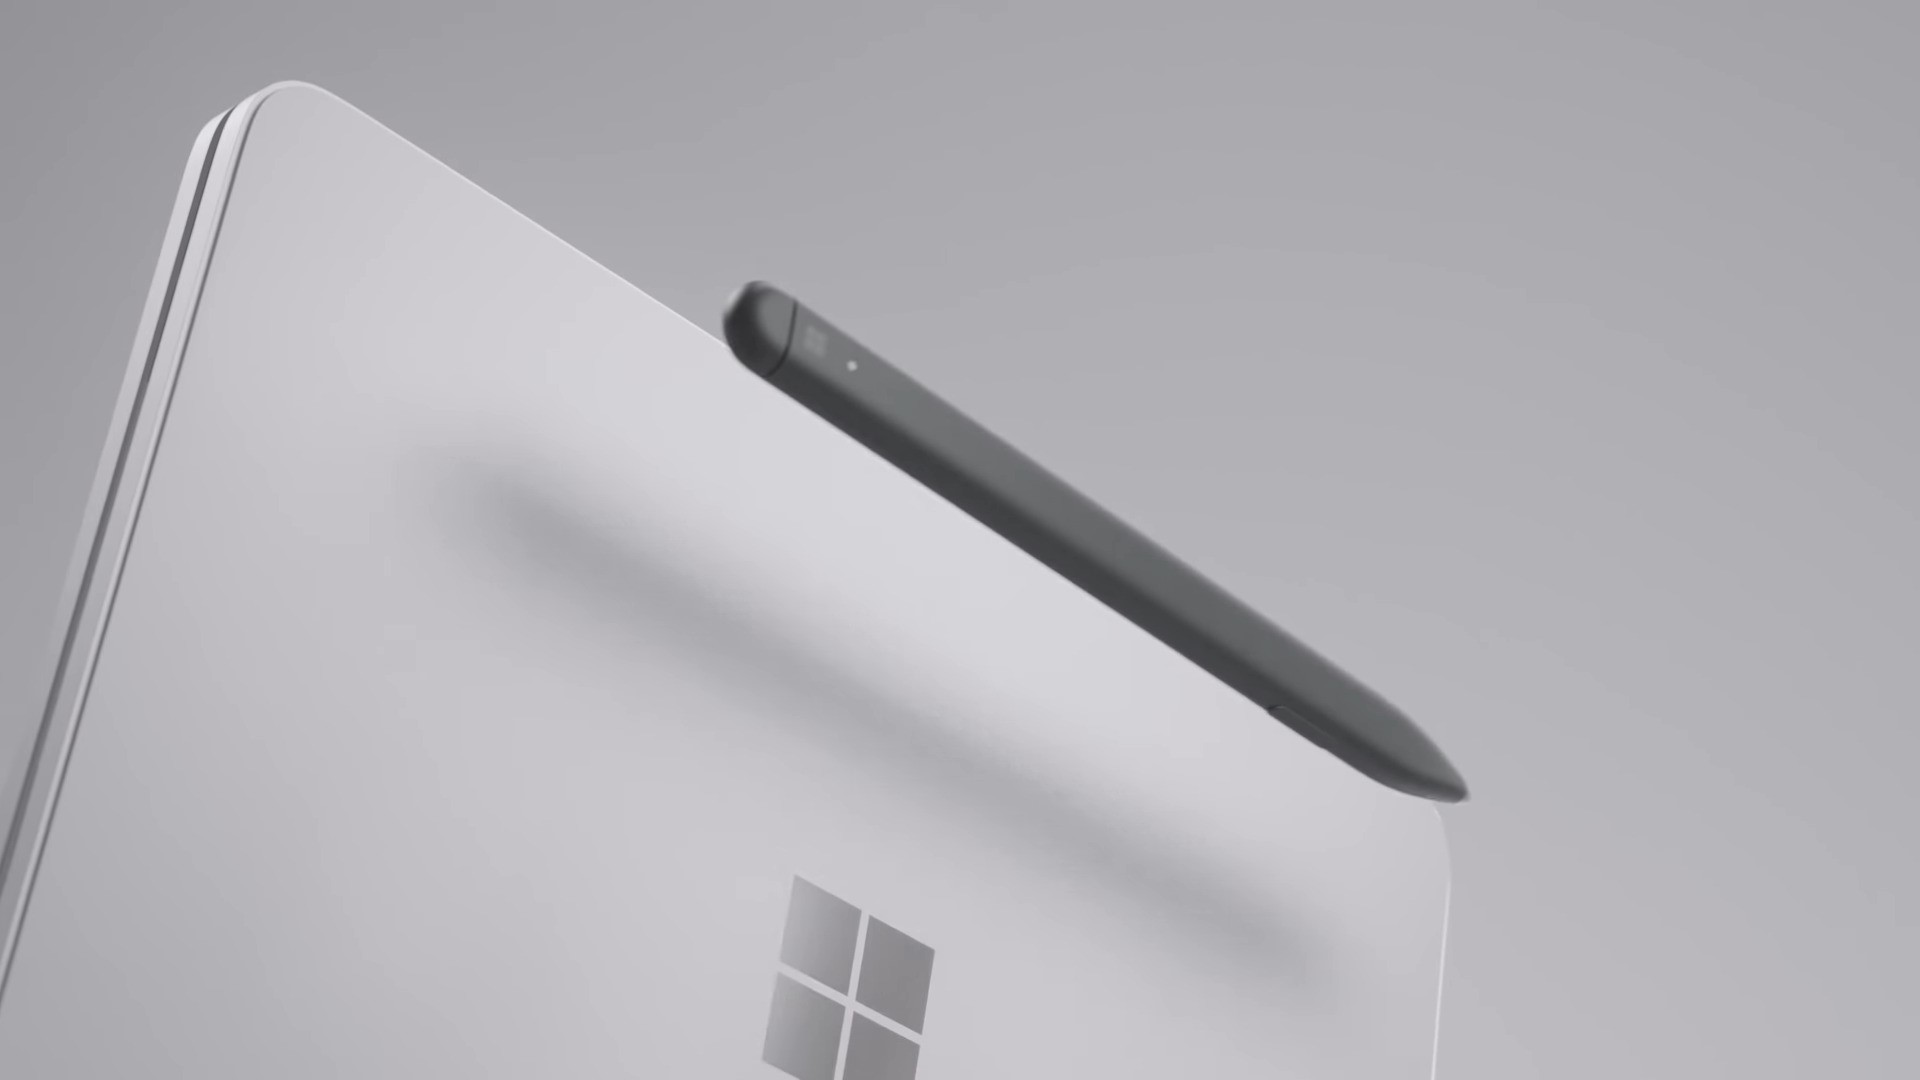 Microsoft Surface Neo,Windows 10X,Tablet,Mit Telefonie,Mit Telefonfunktion,ohne Telefonie,ohne...jpg